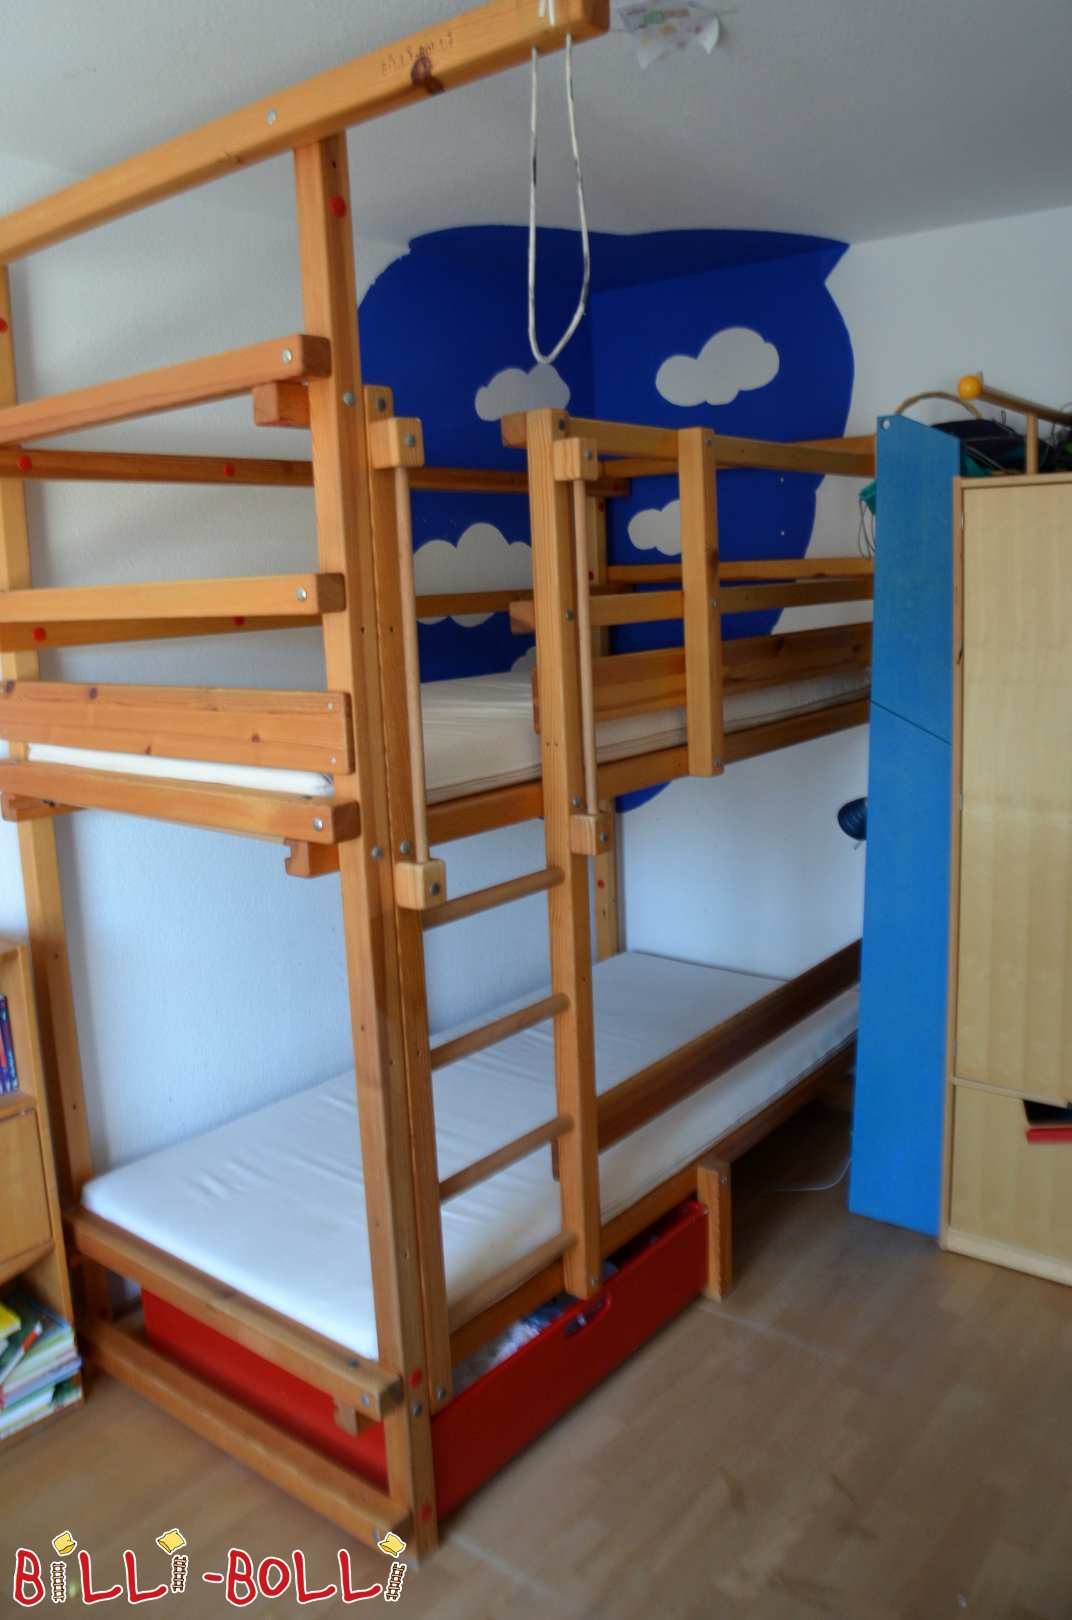 Billi Bolli bunk bed 90x200, pine oiled (second hand bunk bed)